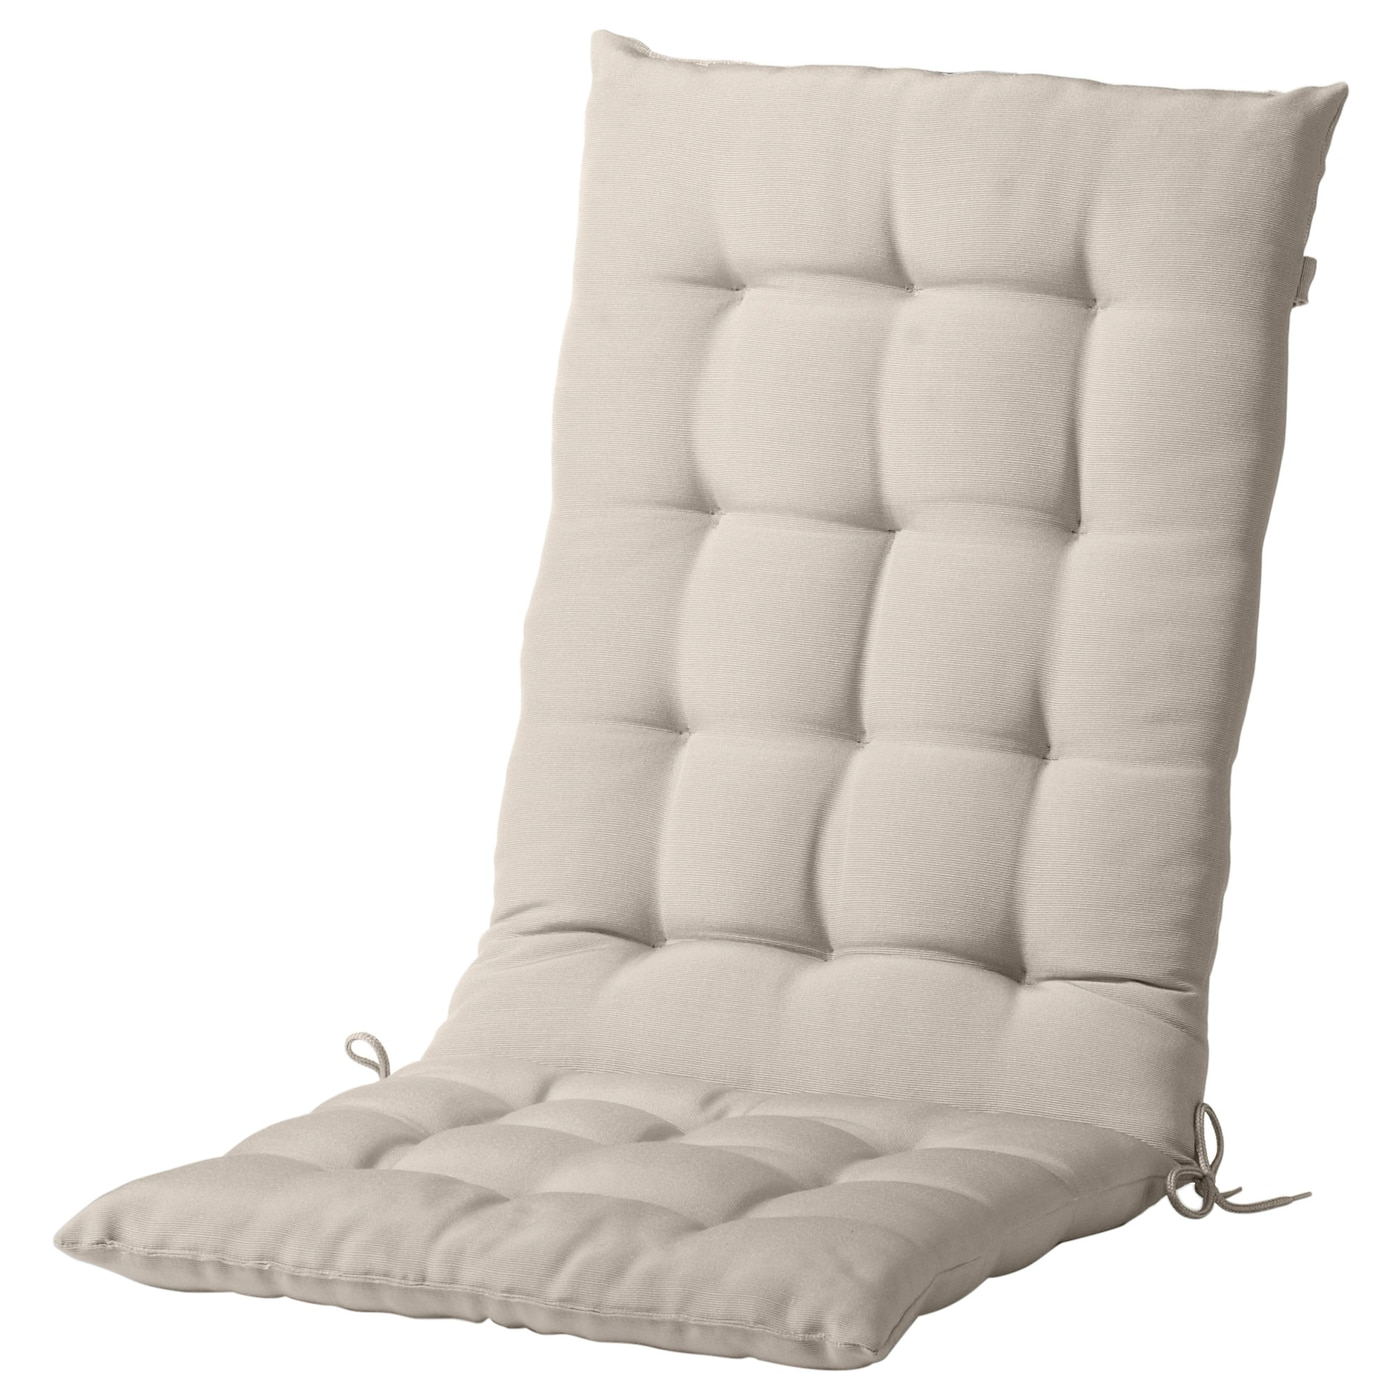 Garden Furniture Cushions Uk outdoor cushions & garden cushions | ikea